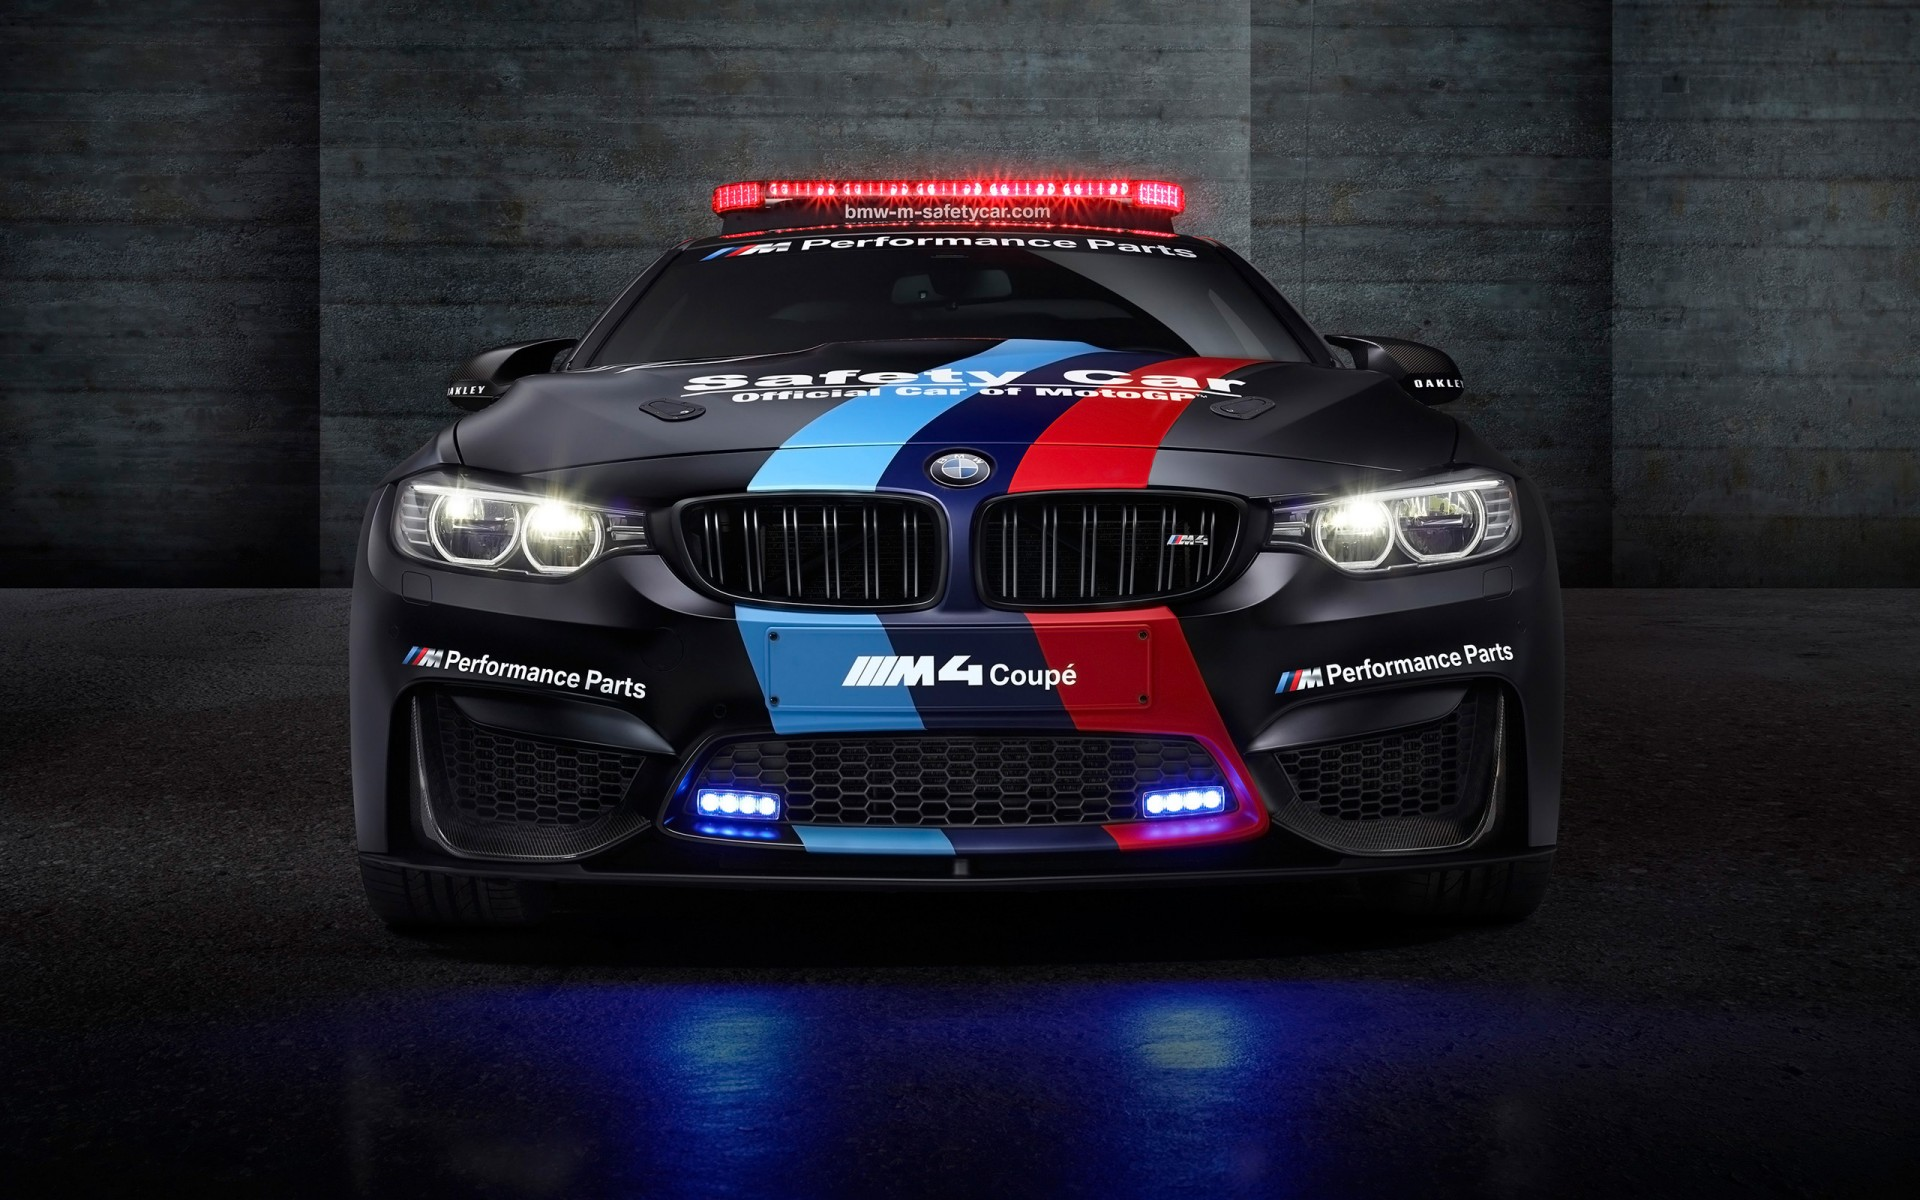 Performance Ford Lincoln >> 2015 BMW M4 MotoGP Safety Car 2 Wallpaper | HD Car ...